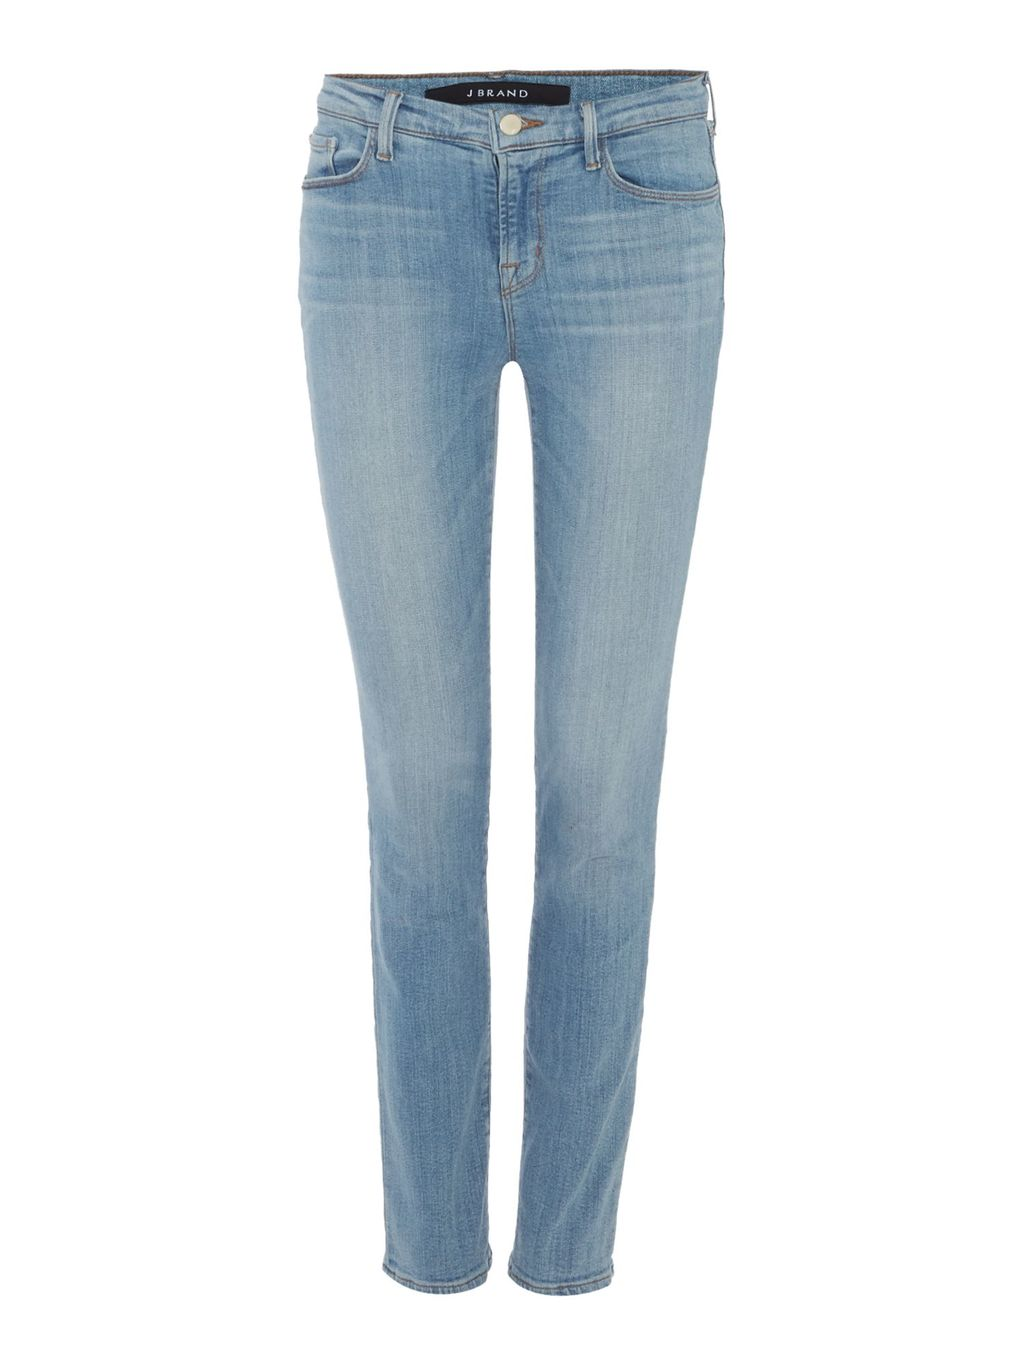 811 Mid Rise Skinny Jean, Blue - style: skinny leg; length: standard; pattern: plain; pocket detail: traditional 5 pocket; waist: mid/regular rise; predominant colour: denim; occasions: casual; fibres: cotton - stretch; jeans detail: shading down centre of thigh, washed/faded; texture group: denim; pattern type: fabric; season: s/s 2016